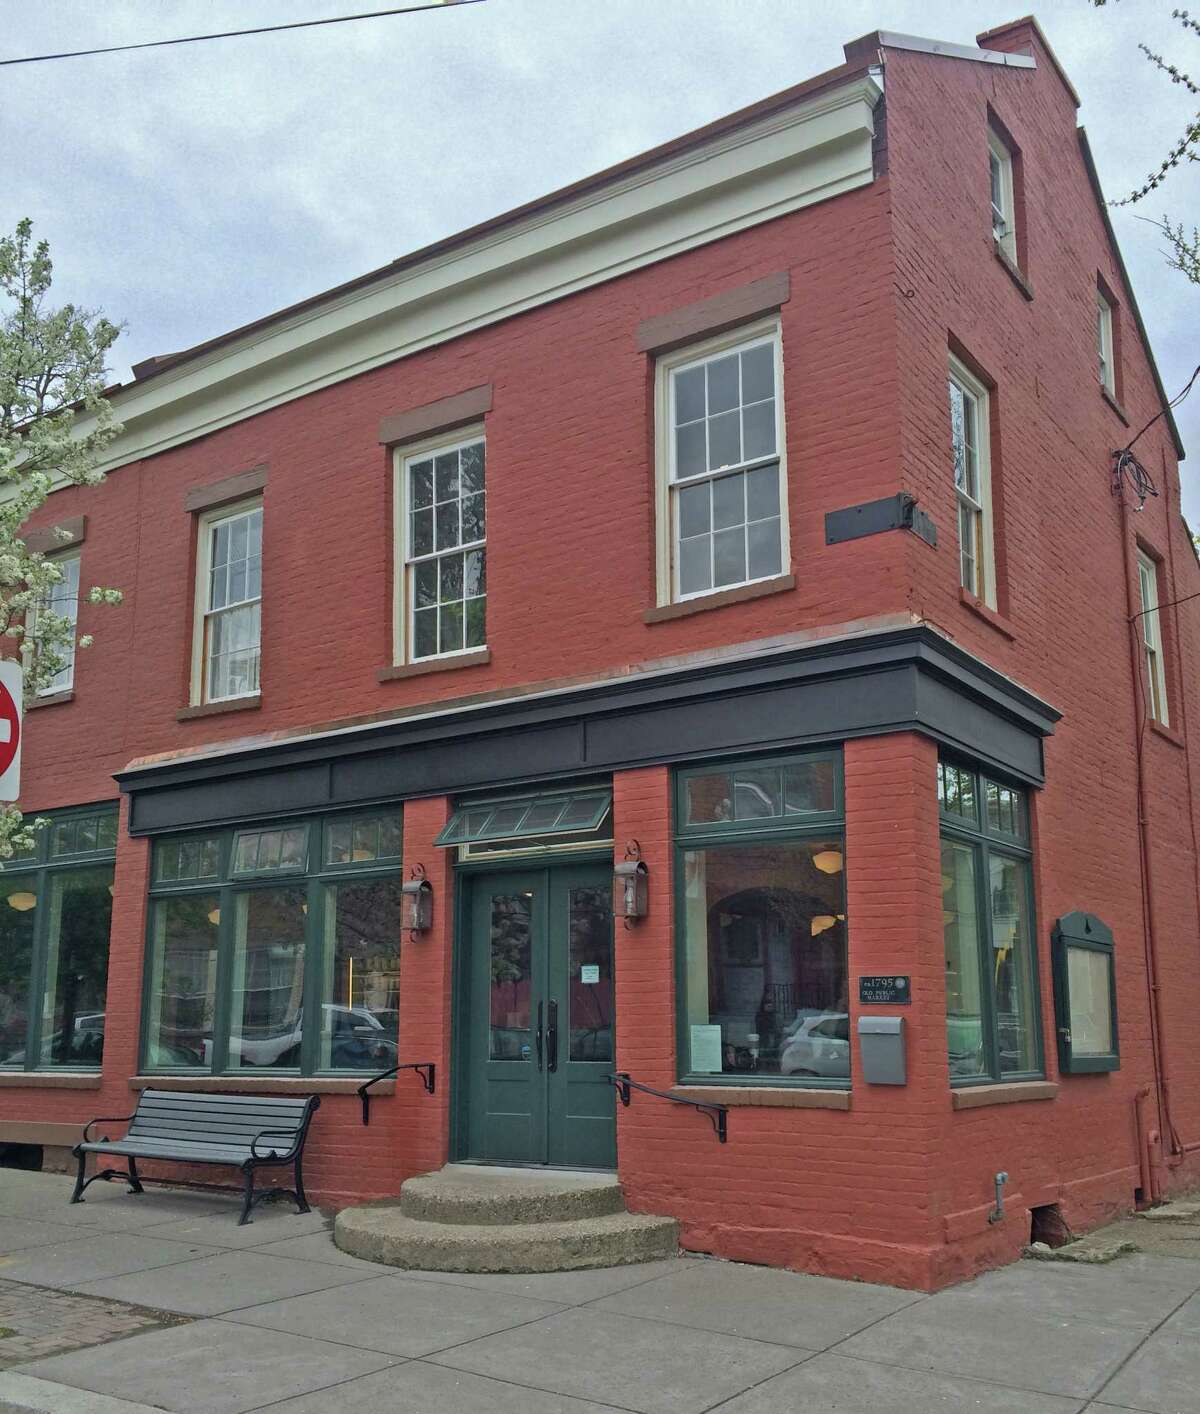 The owner of Arthur's Market in Schenectady's Stockade was honored with a preservation award by the Schenectady Heritage Foundation in 2021.